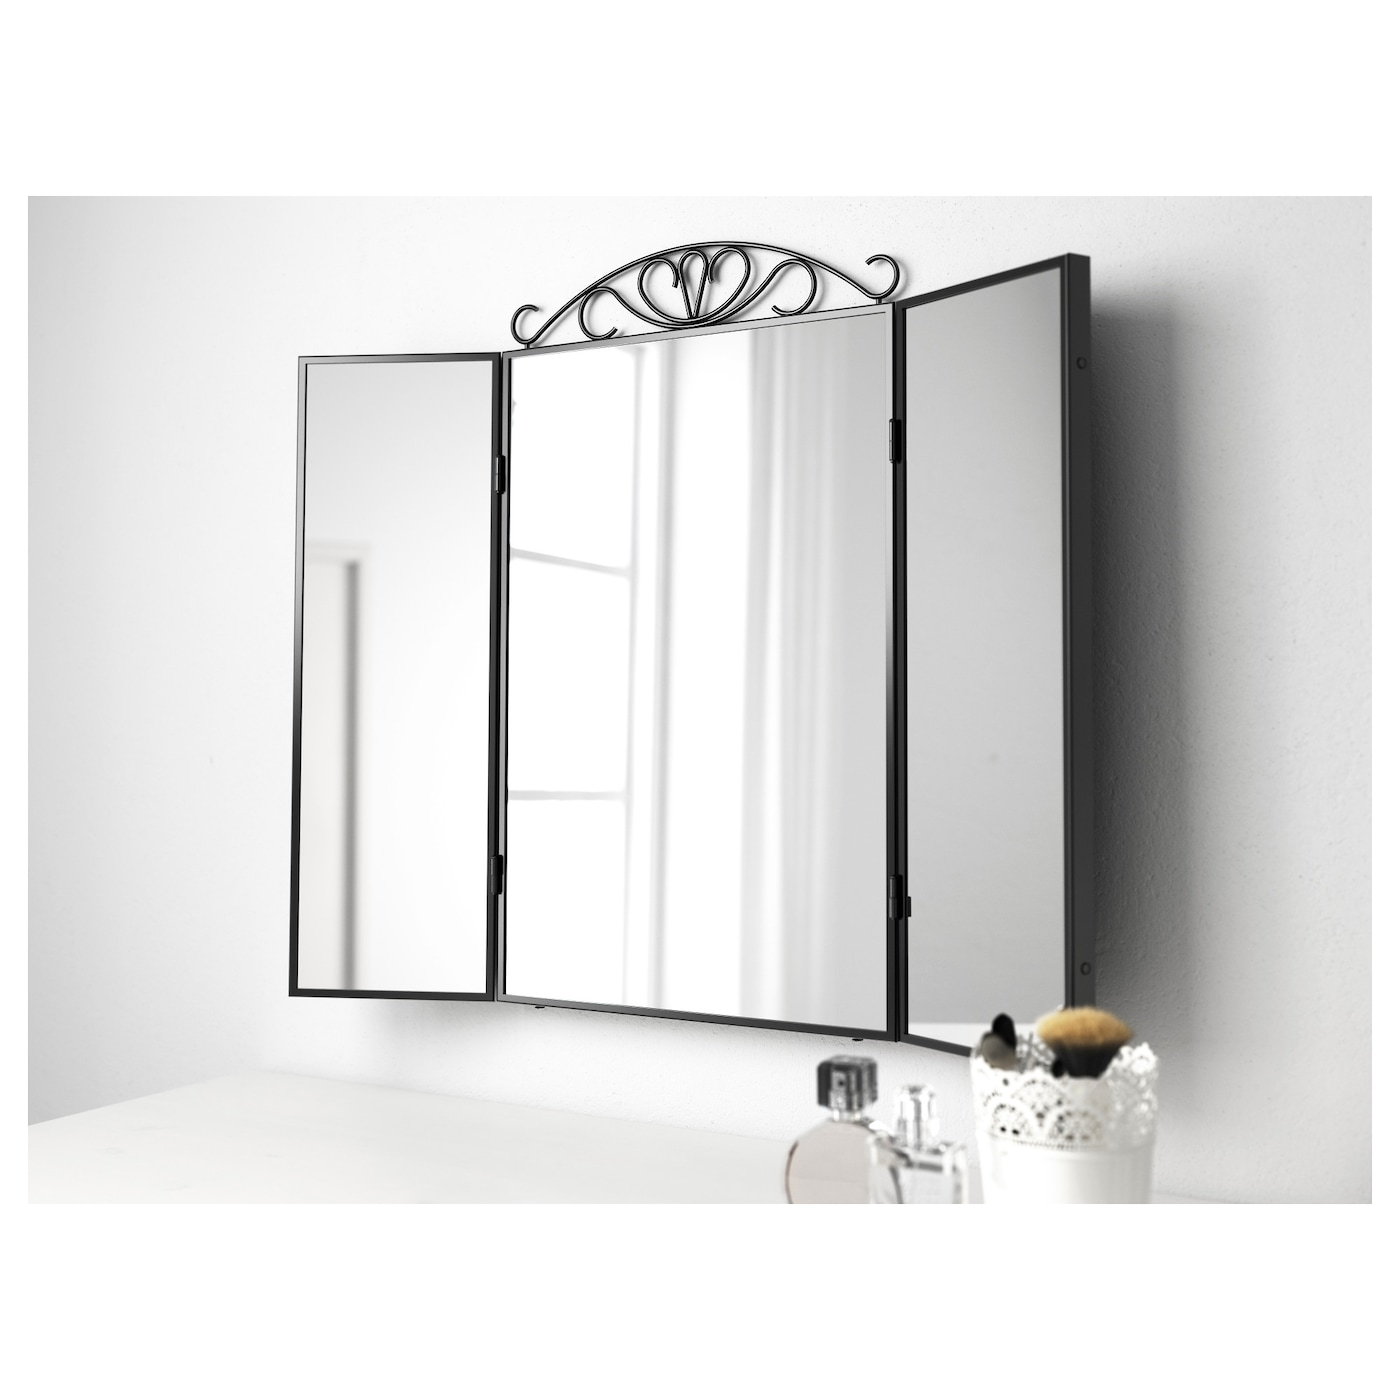 karmsund table mirror black 80x74 cm ikea